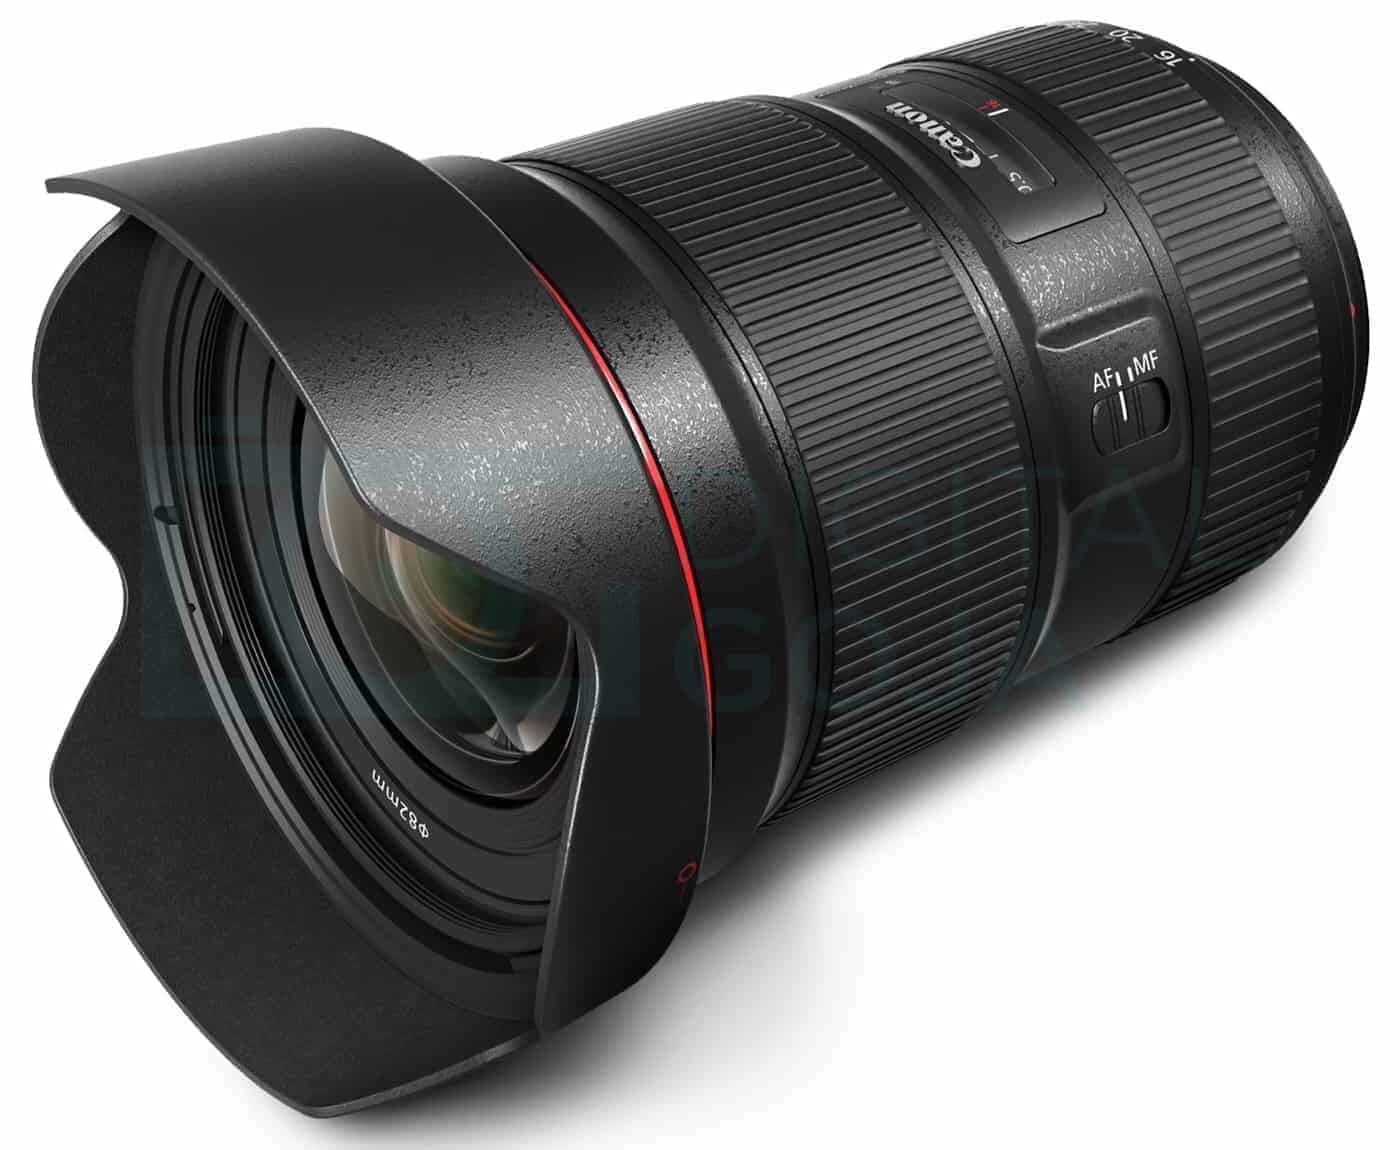 Canon Best Canon Lens for Landscape Photography #1 EF 16-35mm f/2.8L III USM